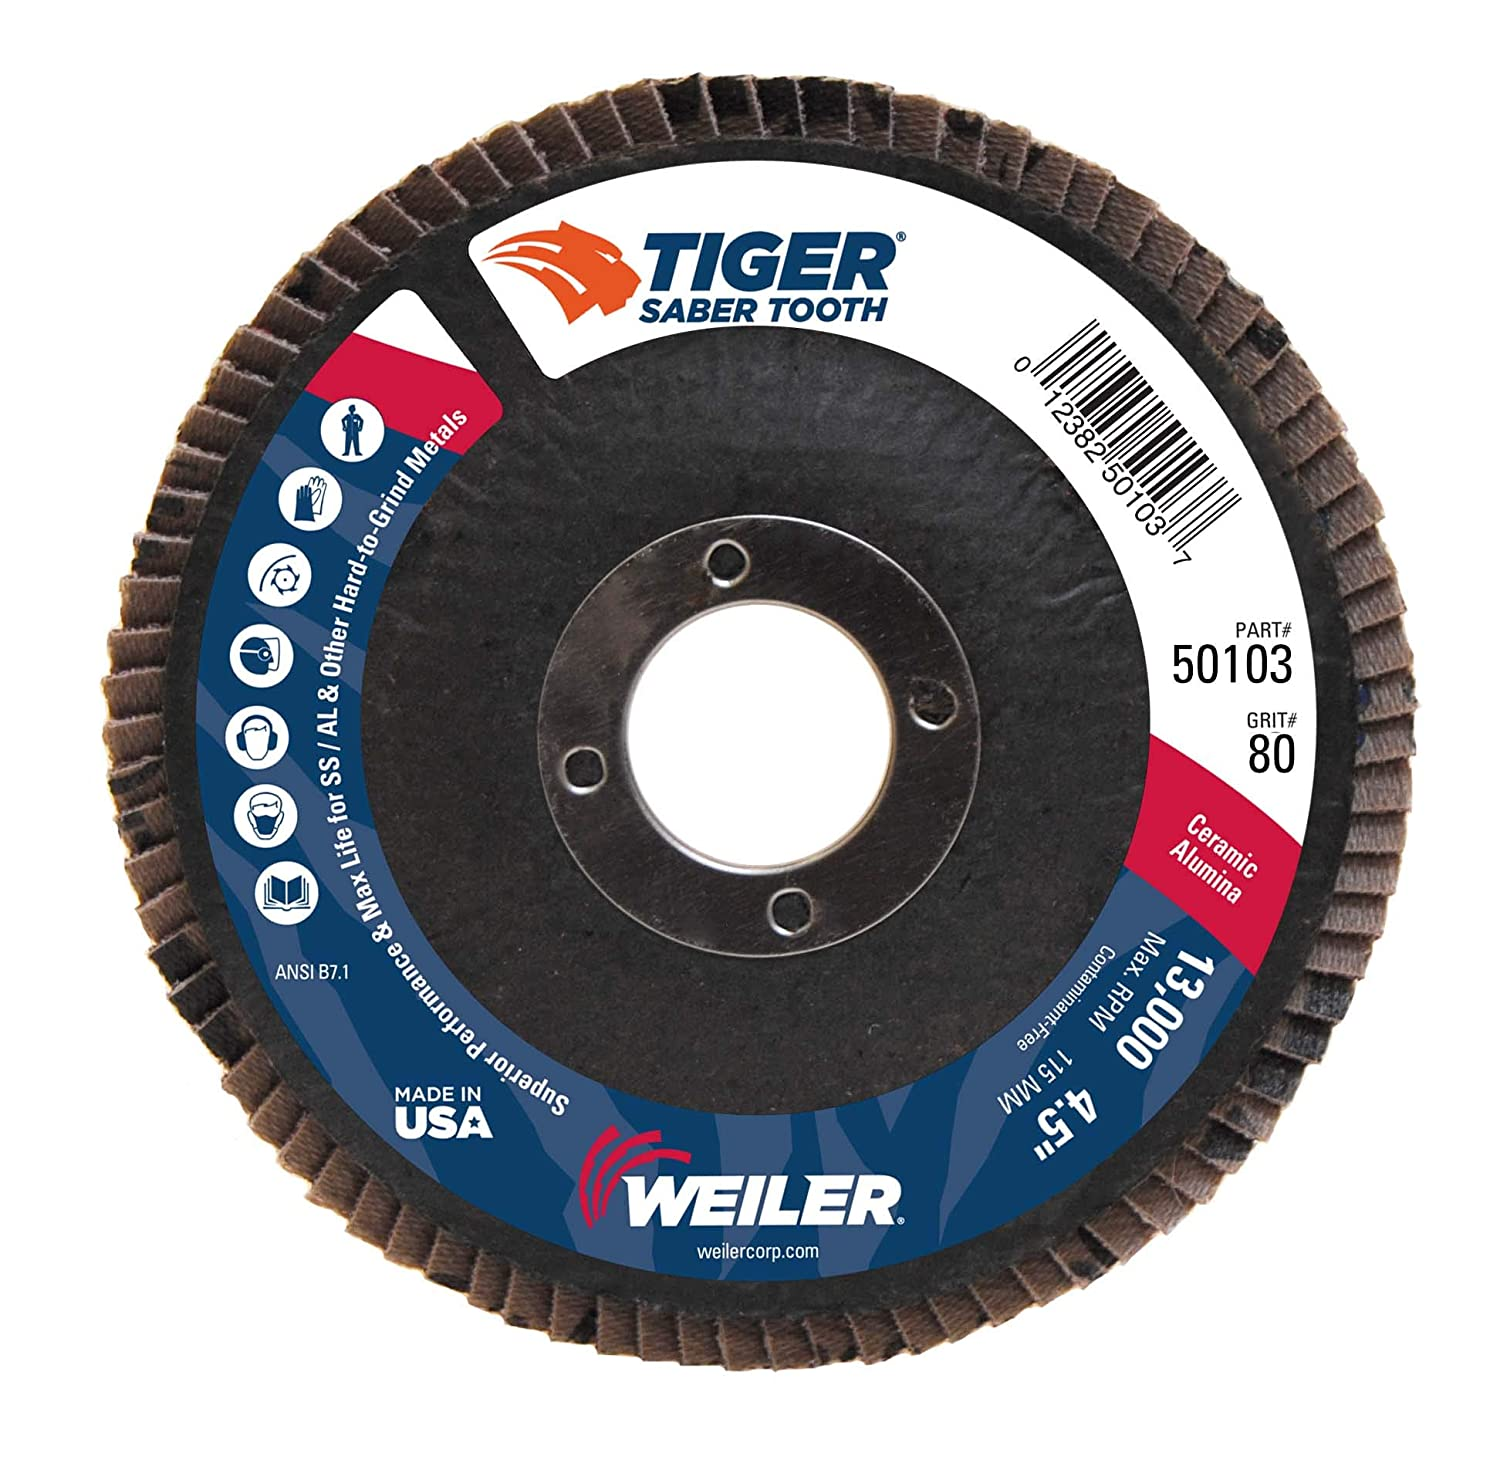 Excellent Weiler Saber Tooth Abrasive Flap Disc Type 29 Round Hole Spiritservingveterans Wood Chair Design Ideas Spiritservingveteransorg